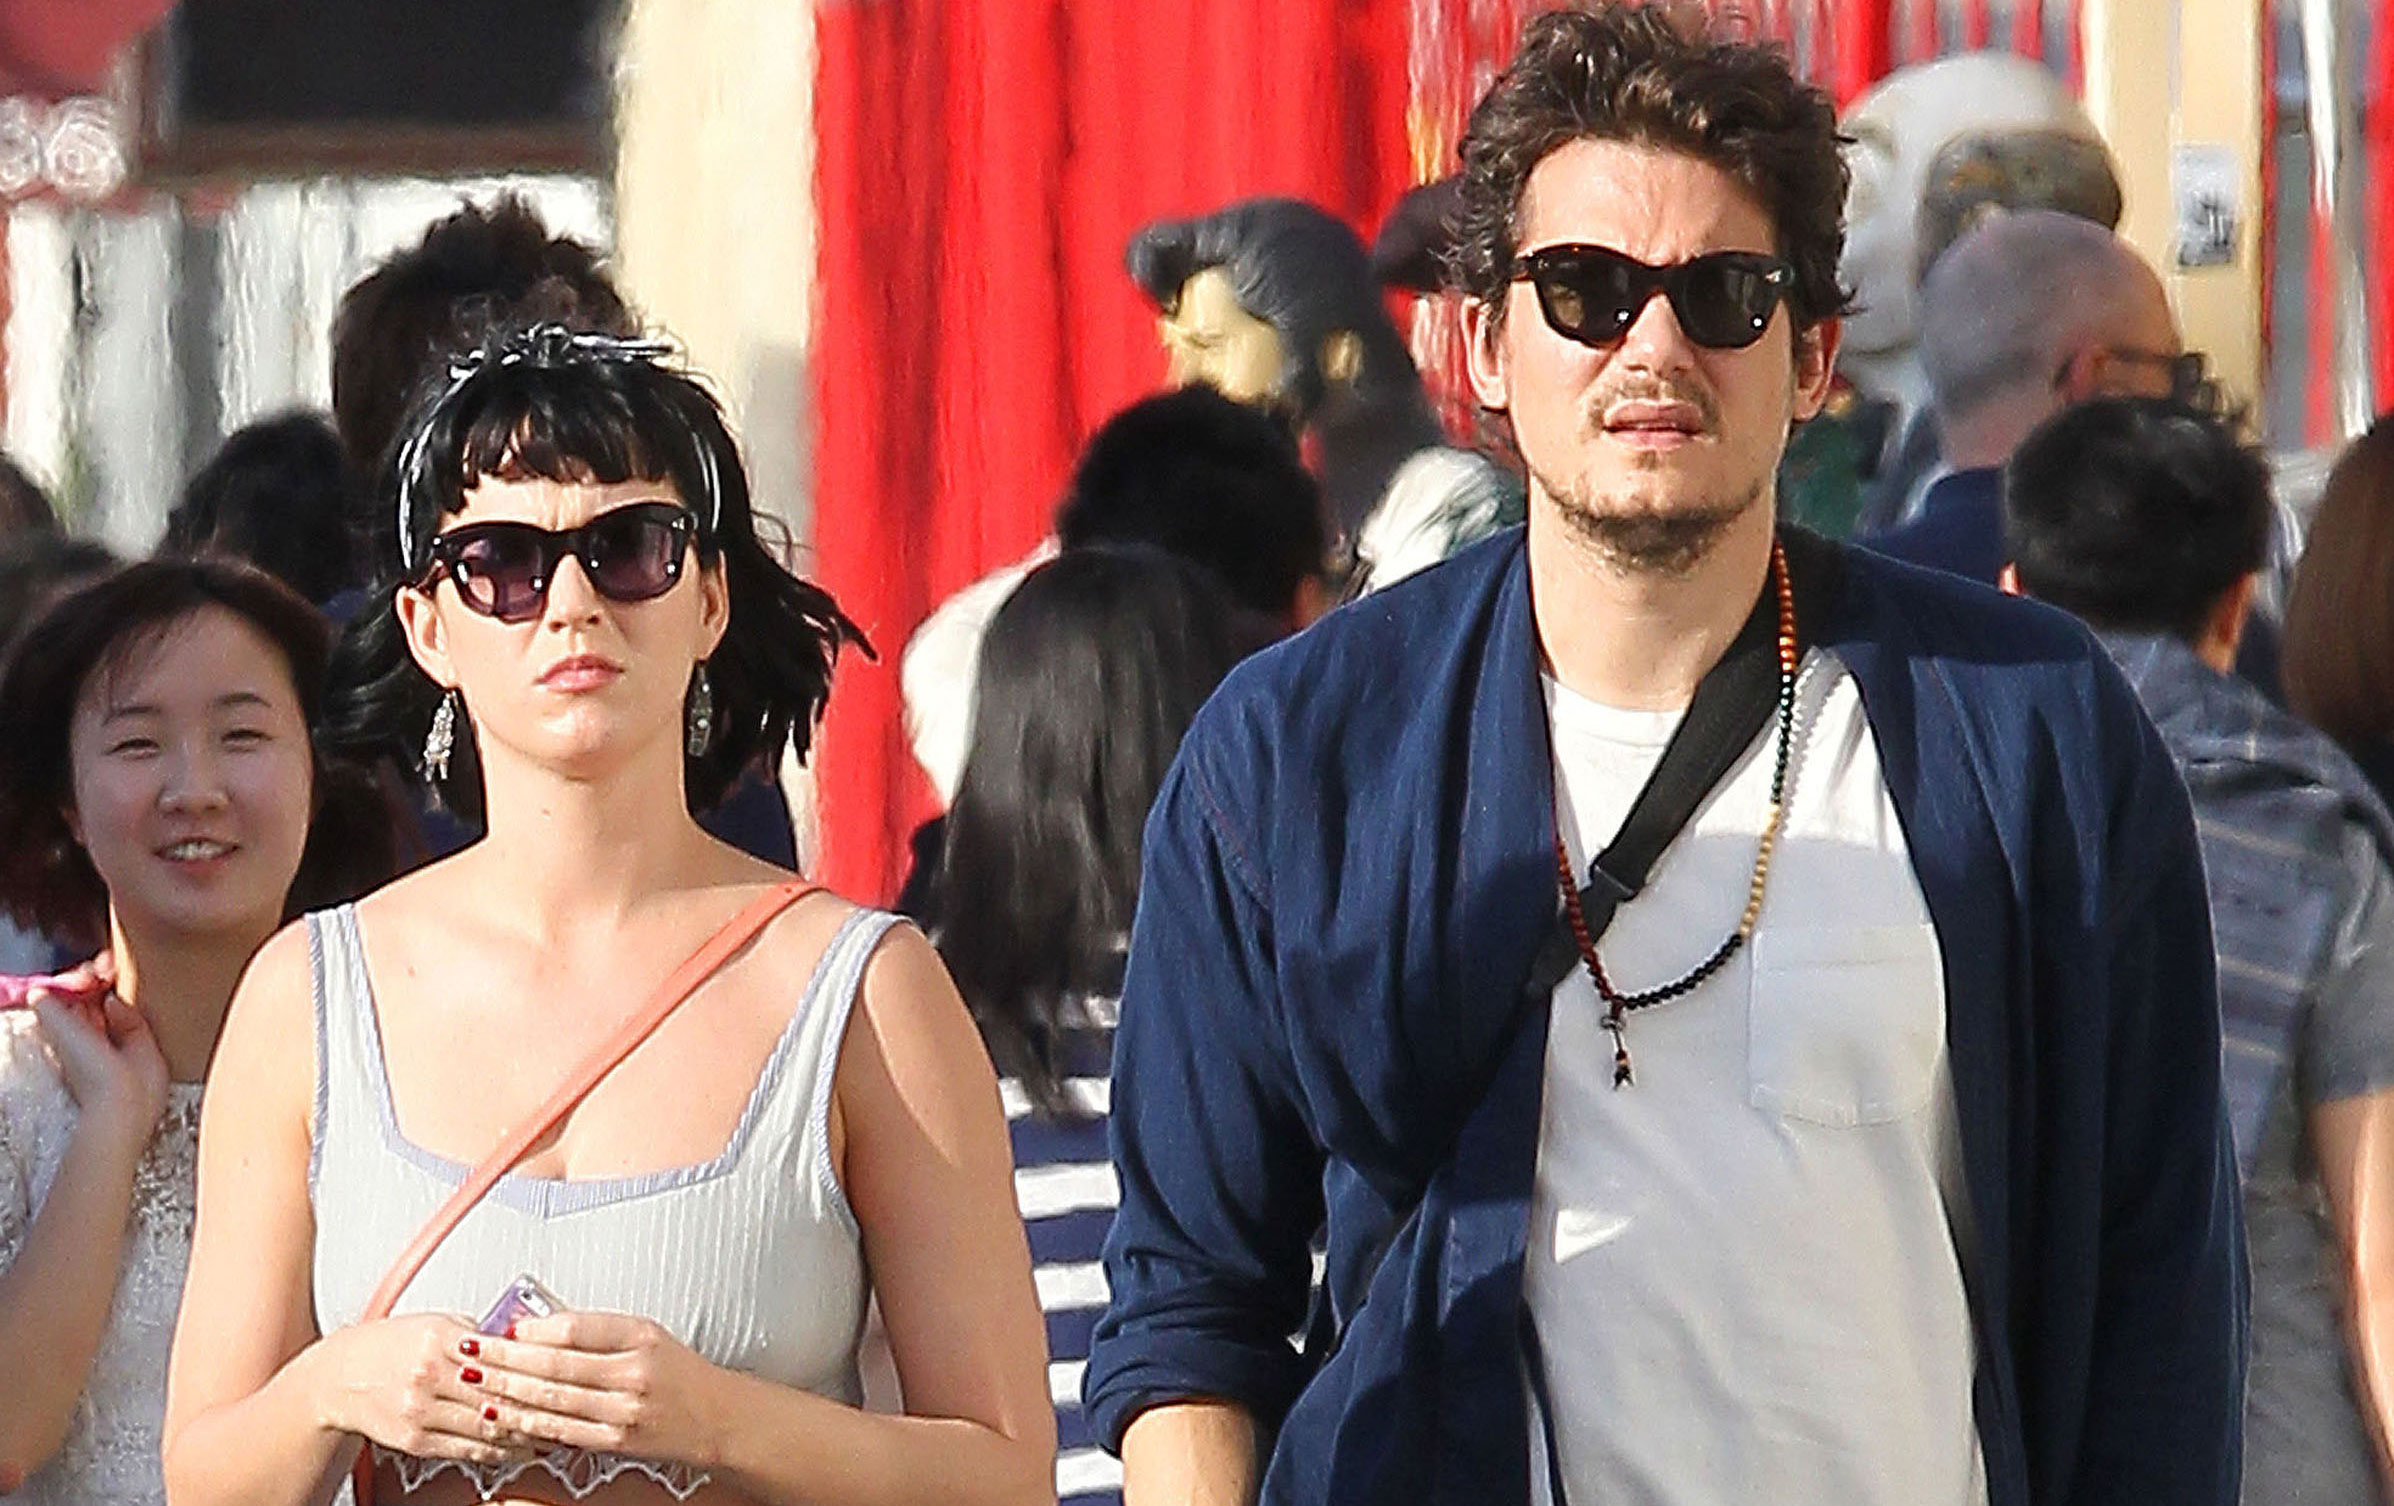 jon-mayer-katy-perry